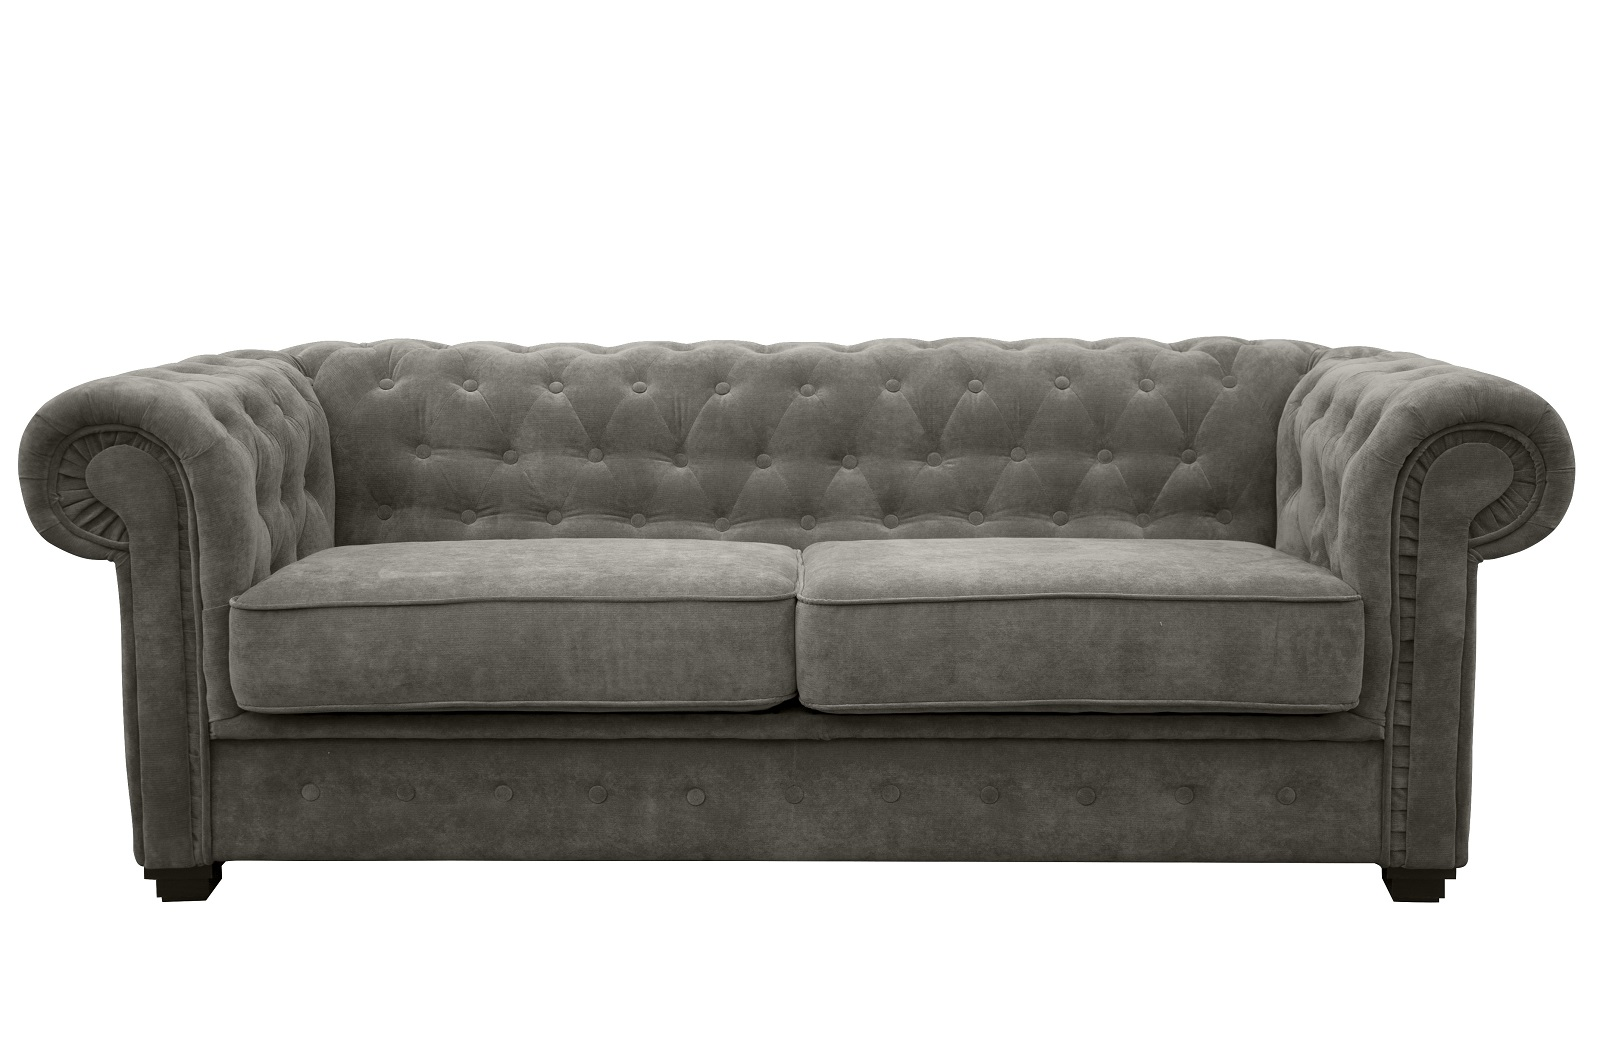 Imperial 2 Seater Sofa Bed